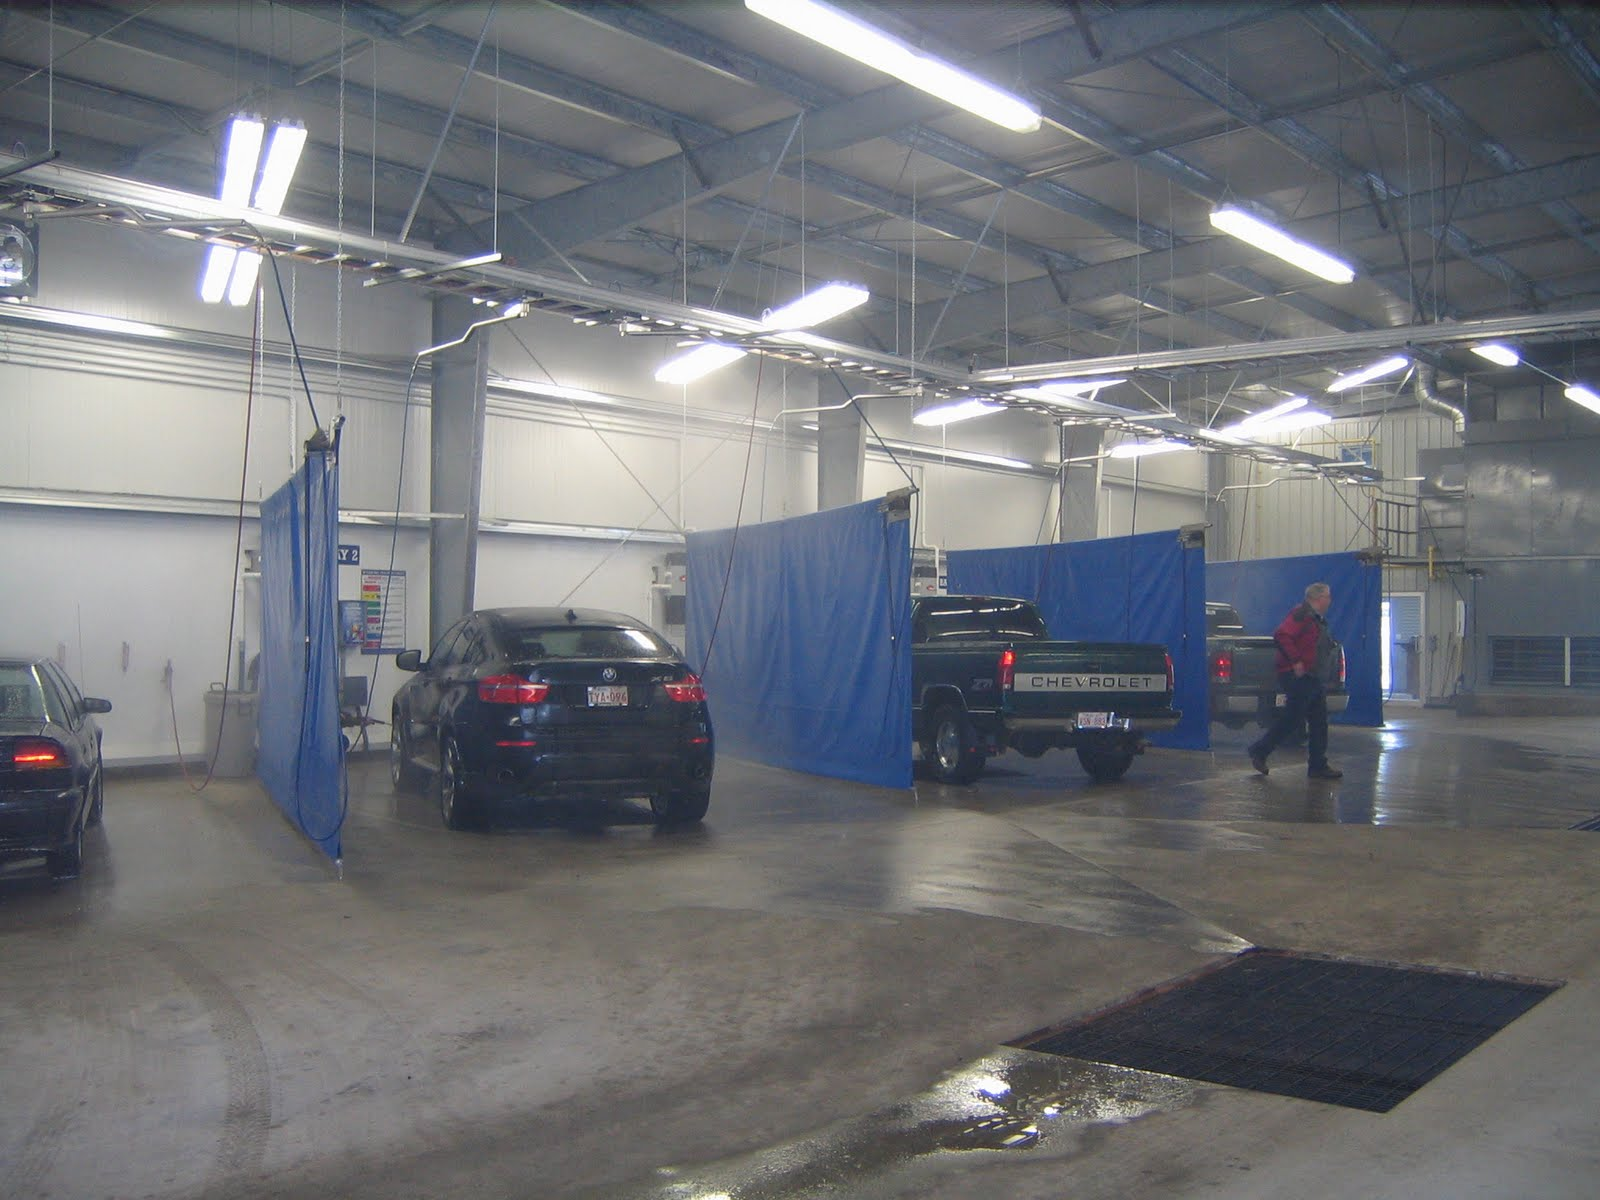 Car Real Estate: Car Washes And Real Estate